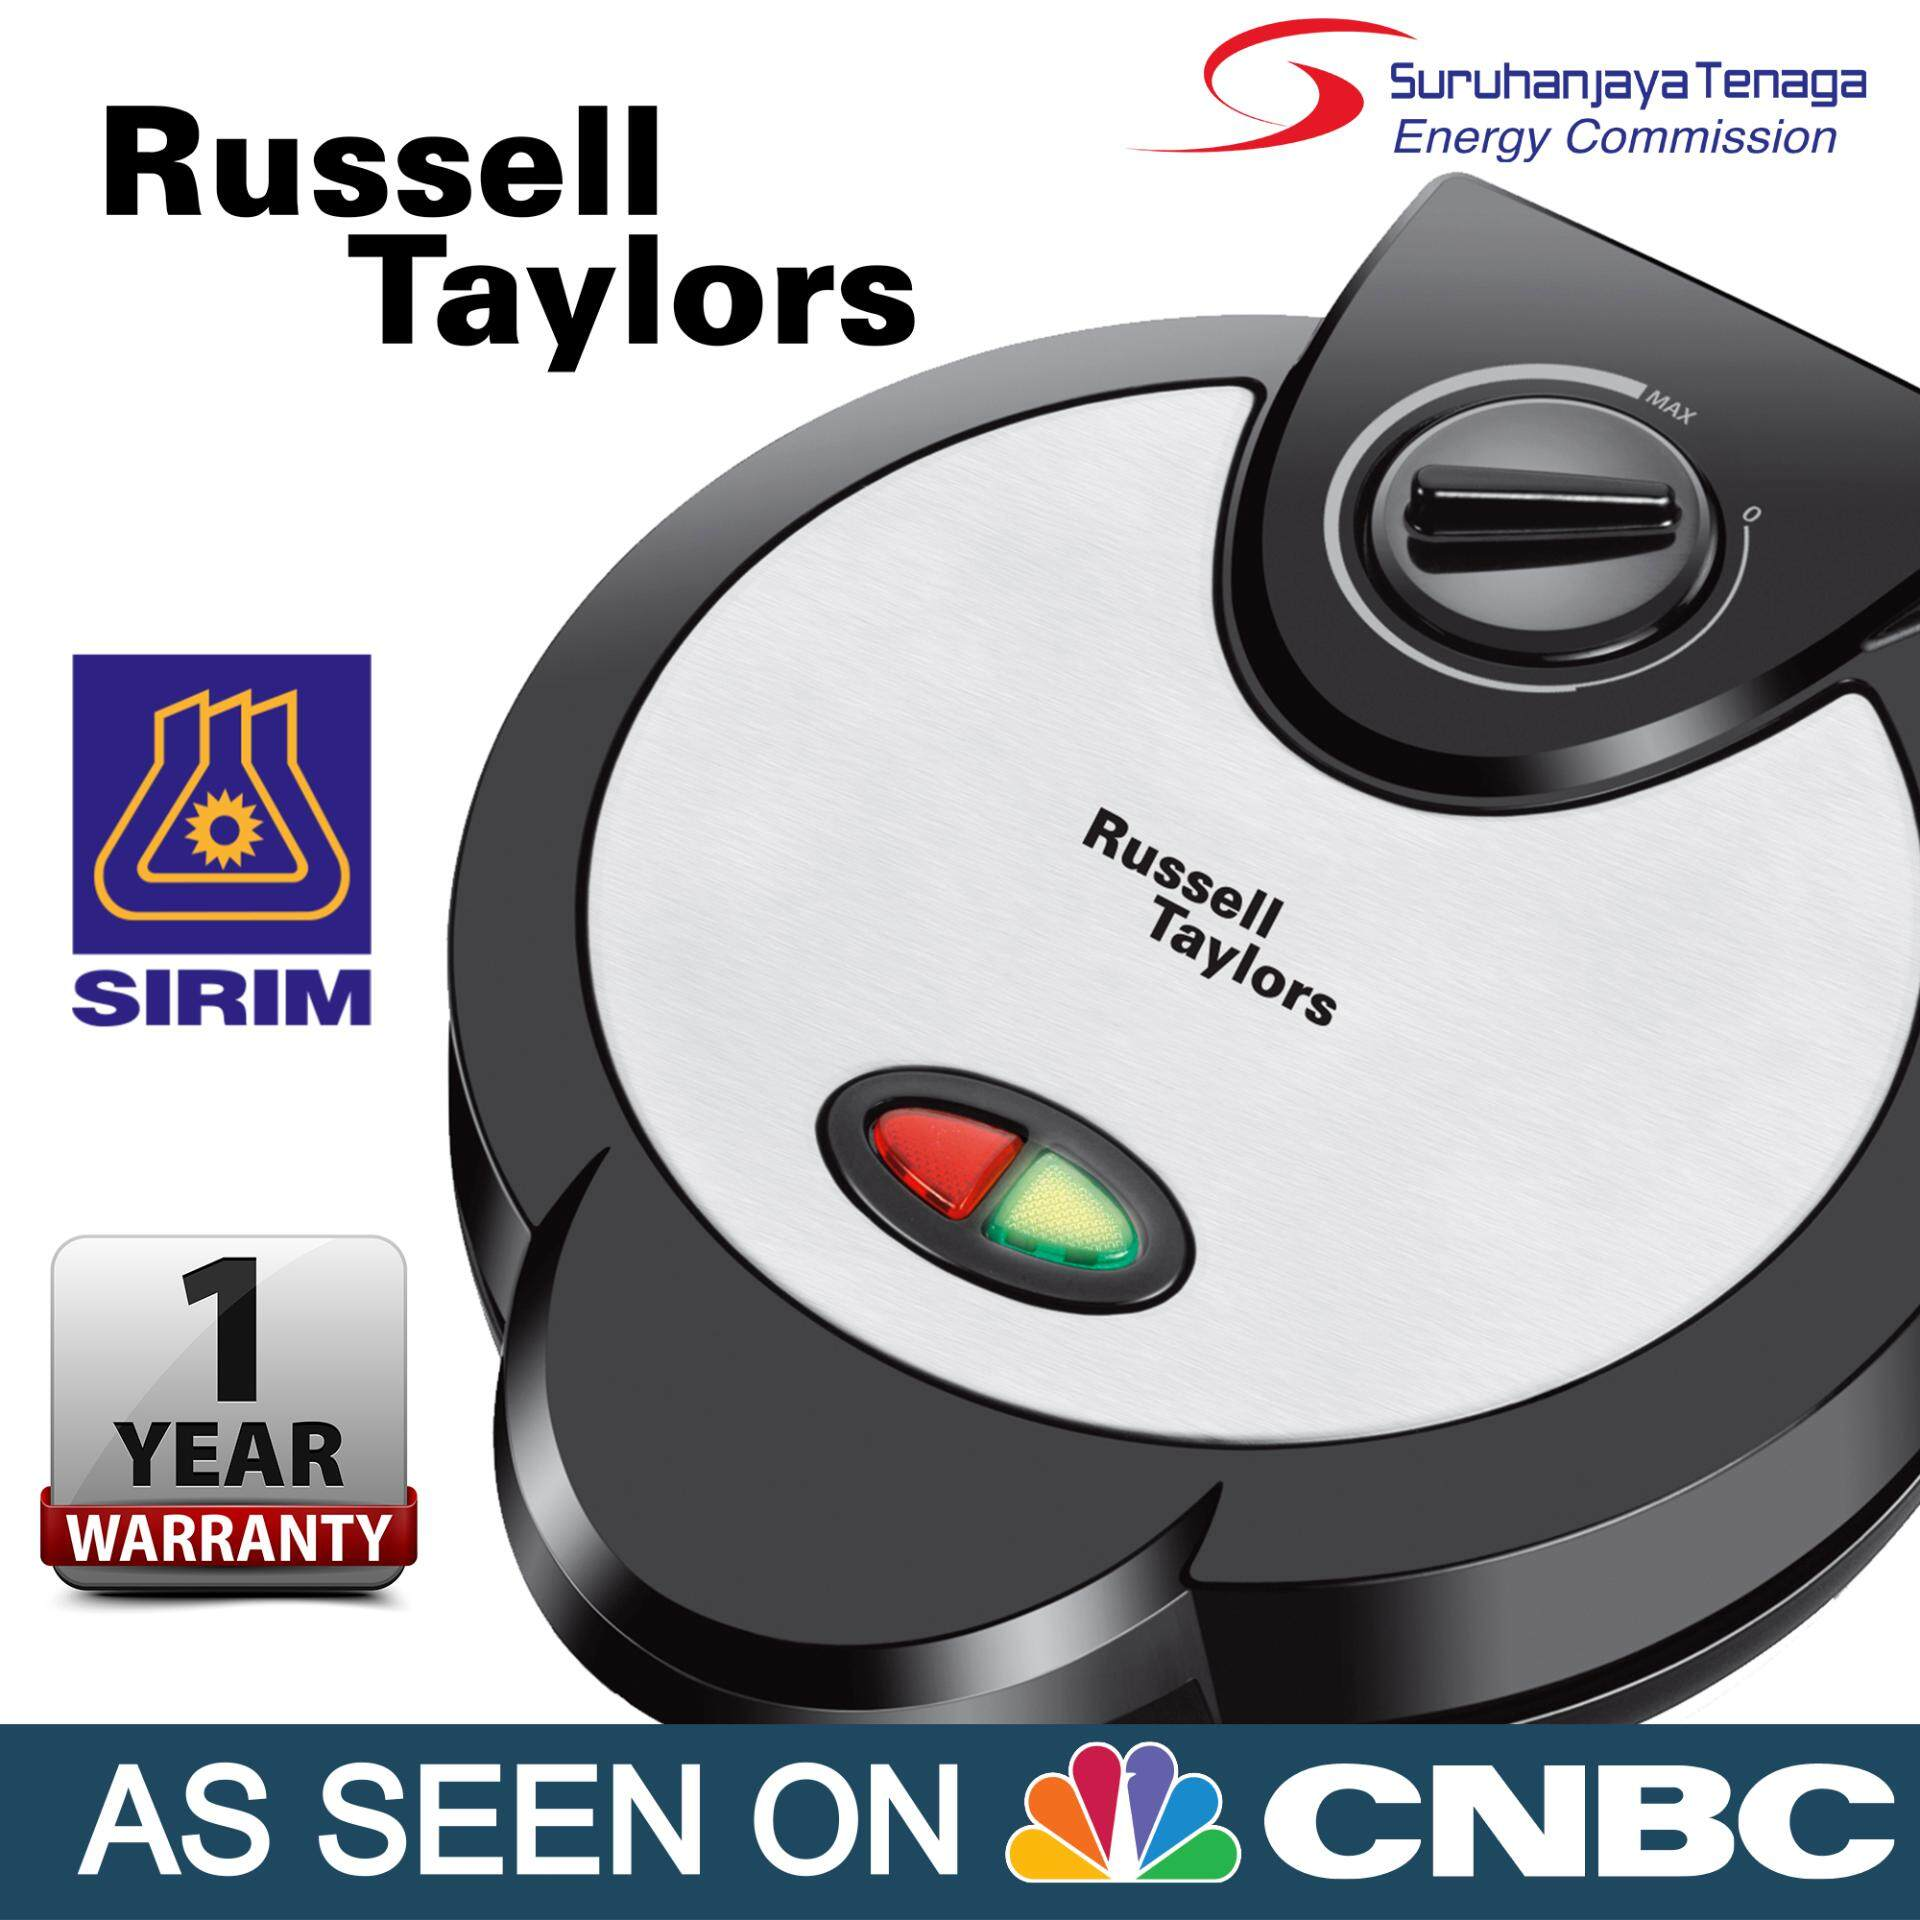 Russell Taylors Belgian Waffle Maker With Temperature Control (stainless Steel) Wm-25 By Russell Taylors.